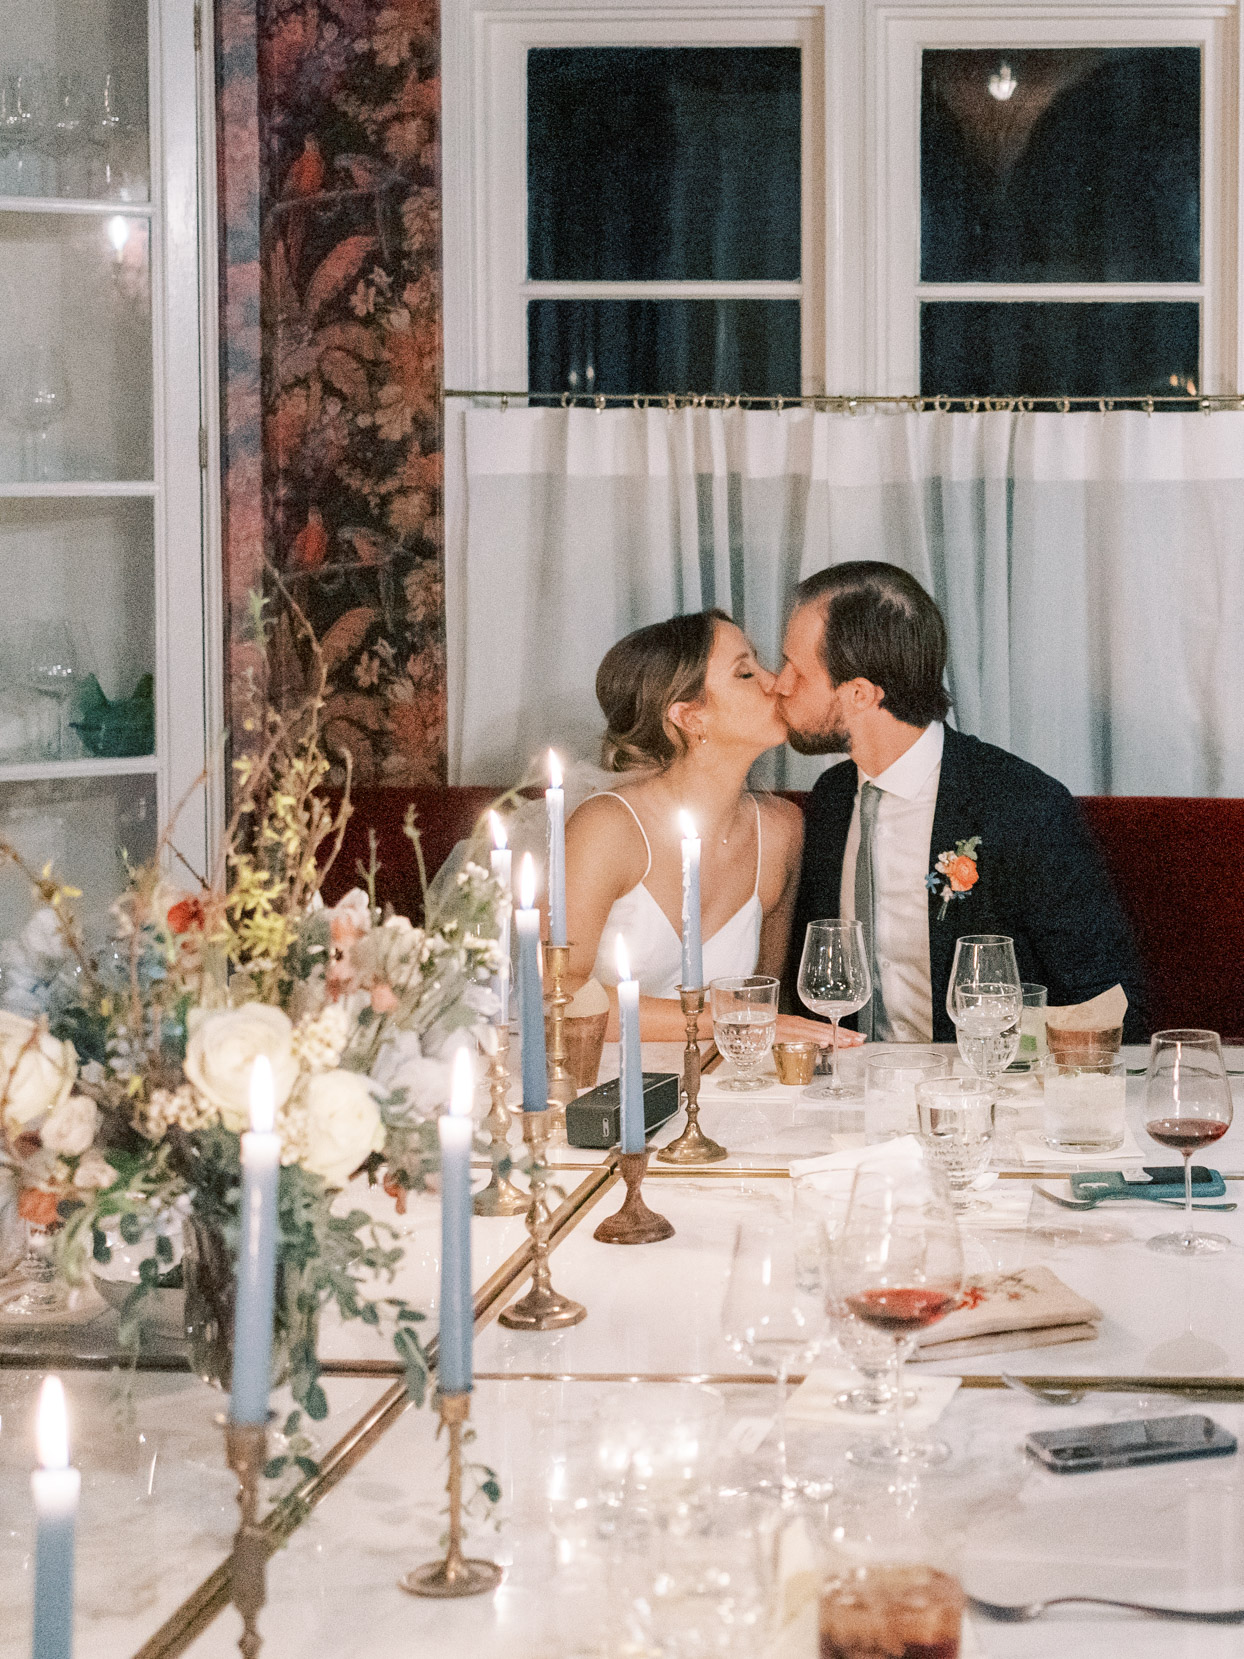 couple kissing at wedding reception table